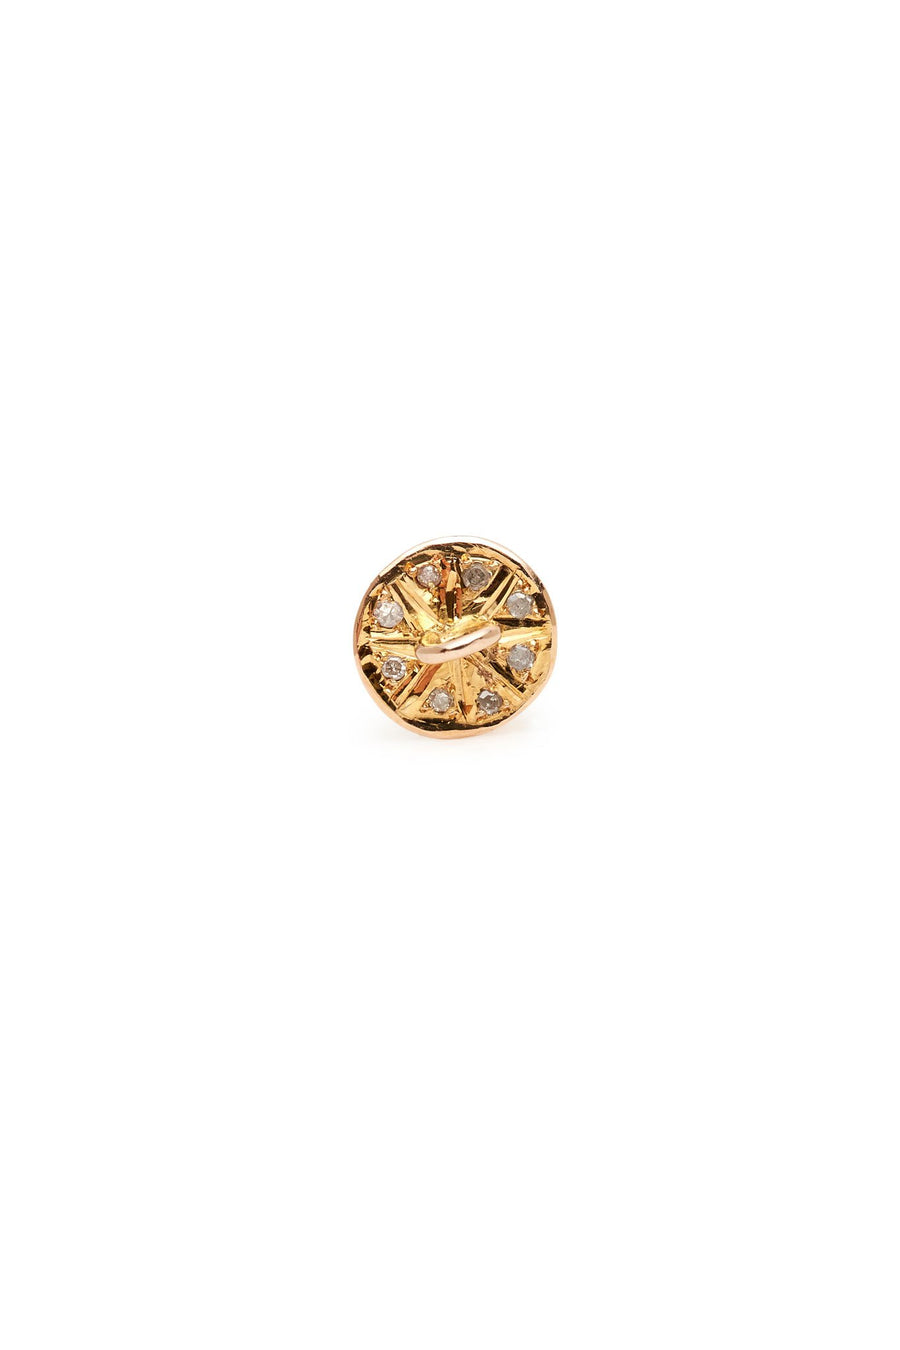 18K Gold & Diamond Screw Charm